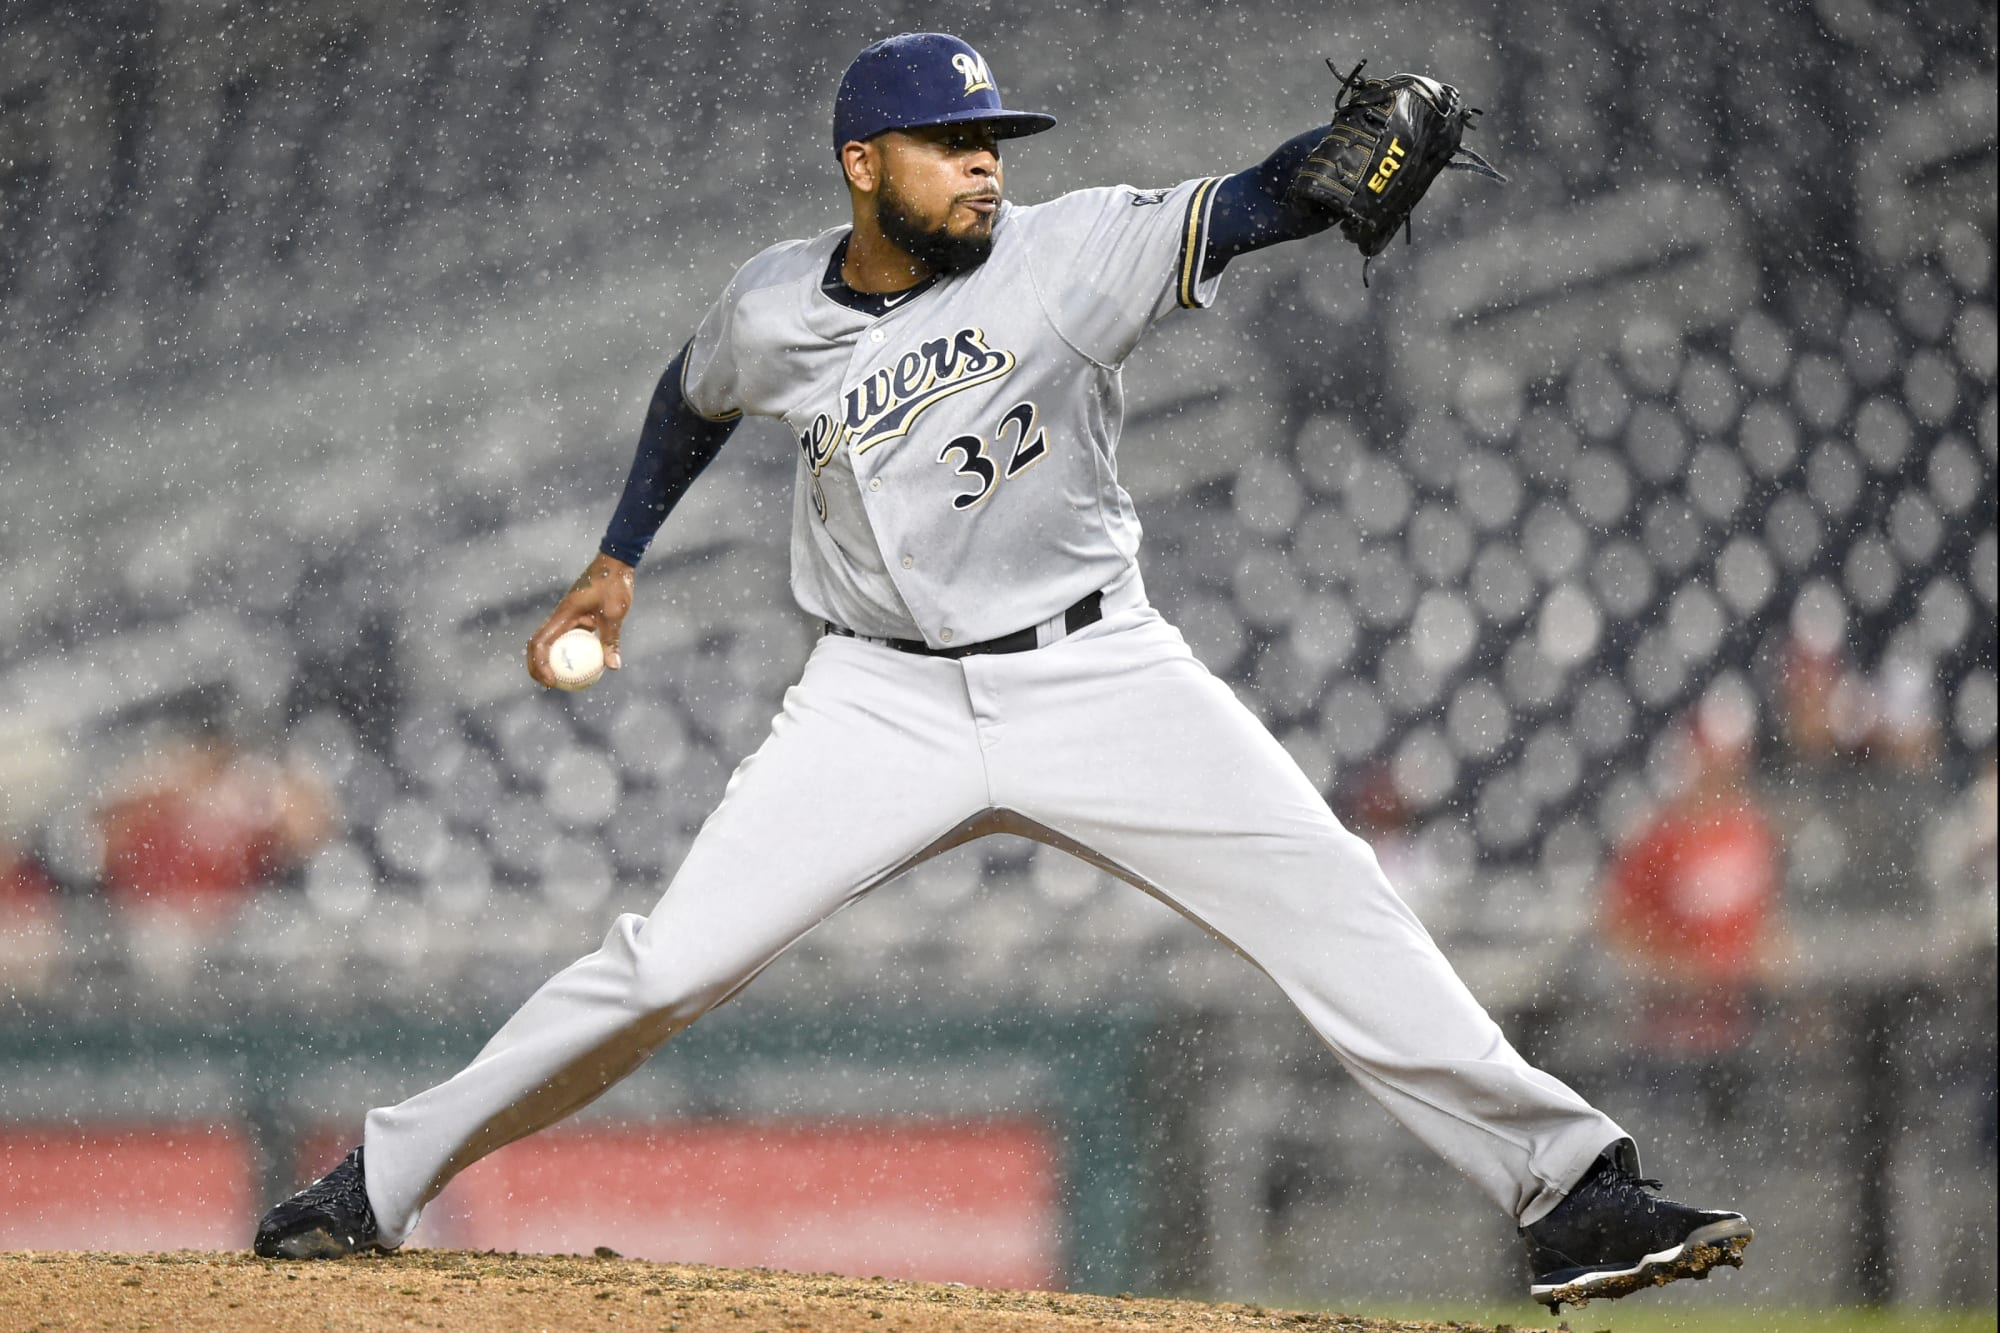 Washington Nationals trolled by Jeremy Jeffress in questionable tweet